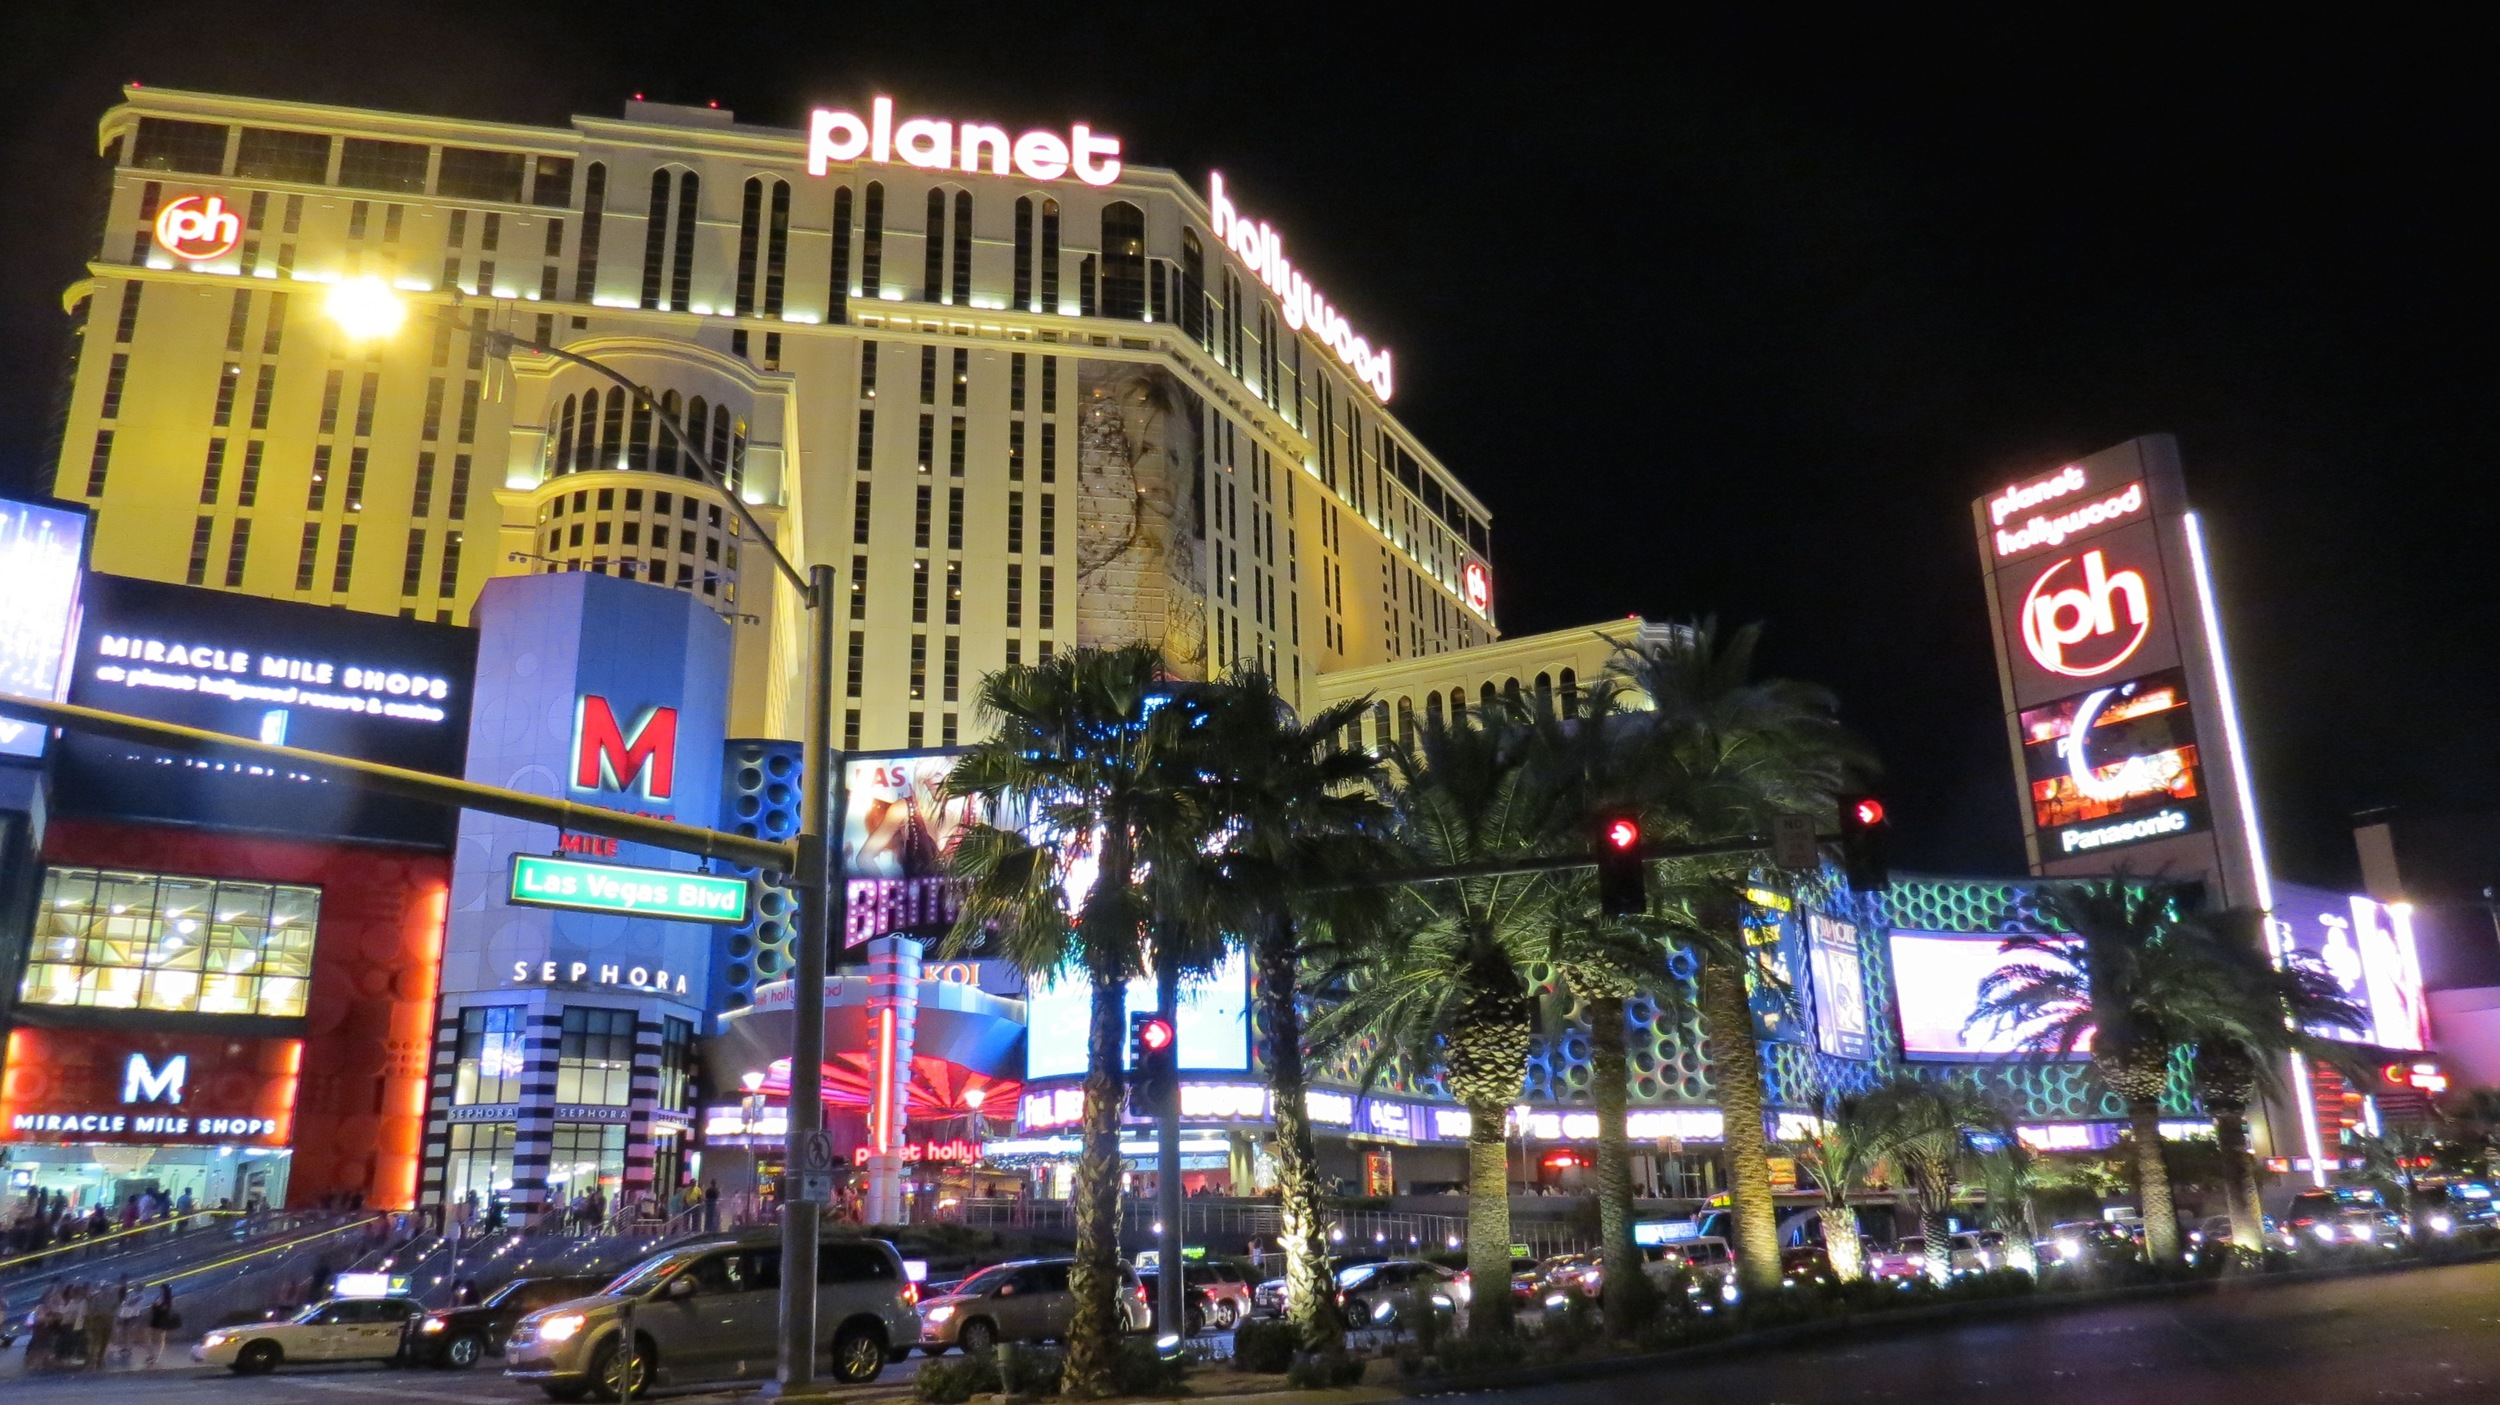 The sensational Planet Hollywood Resort & Casino, right on the Las Vegas strip. So many lights!